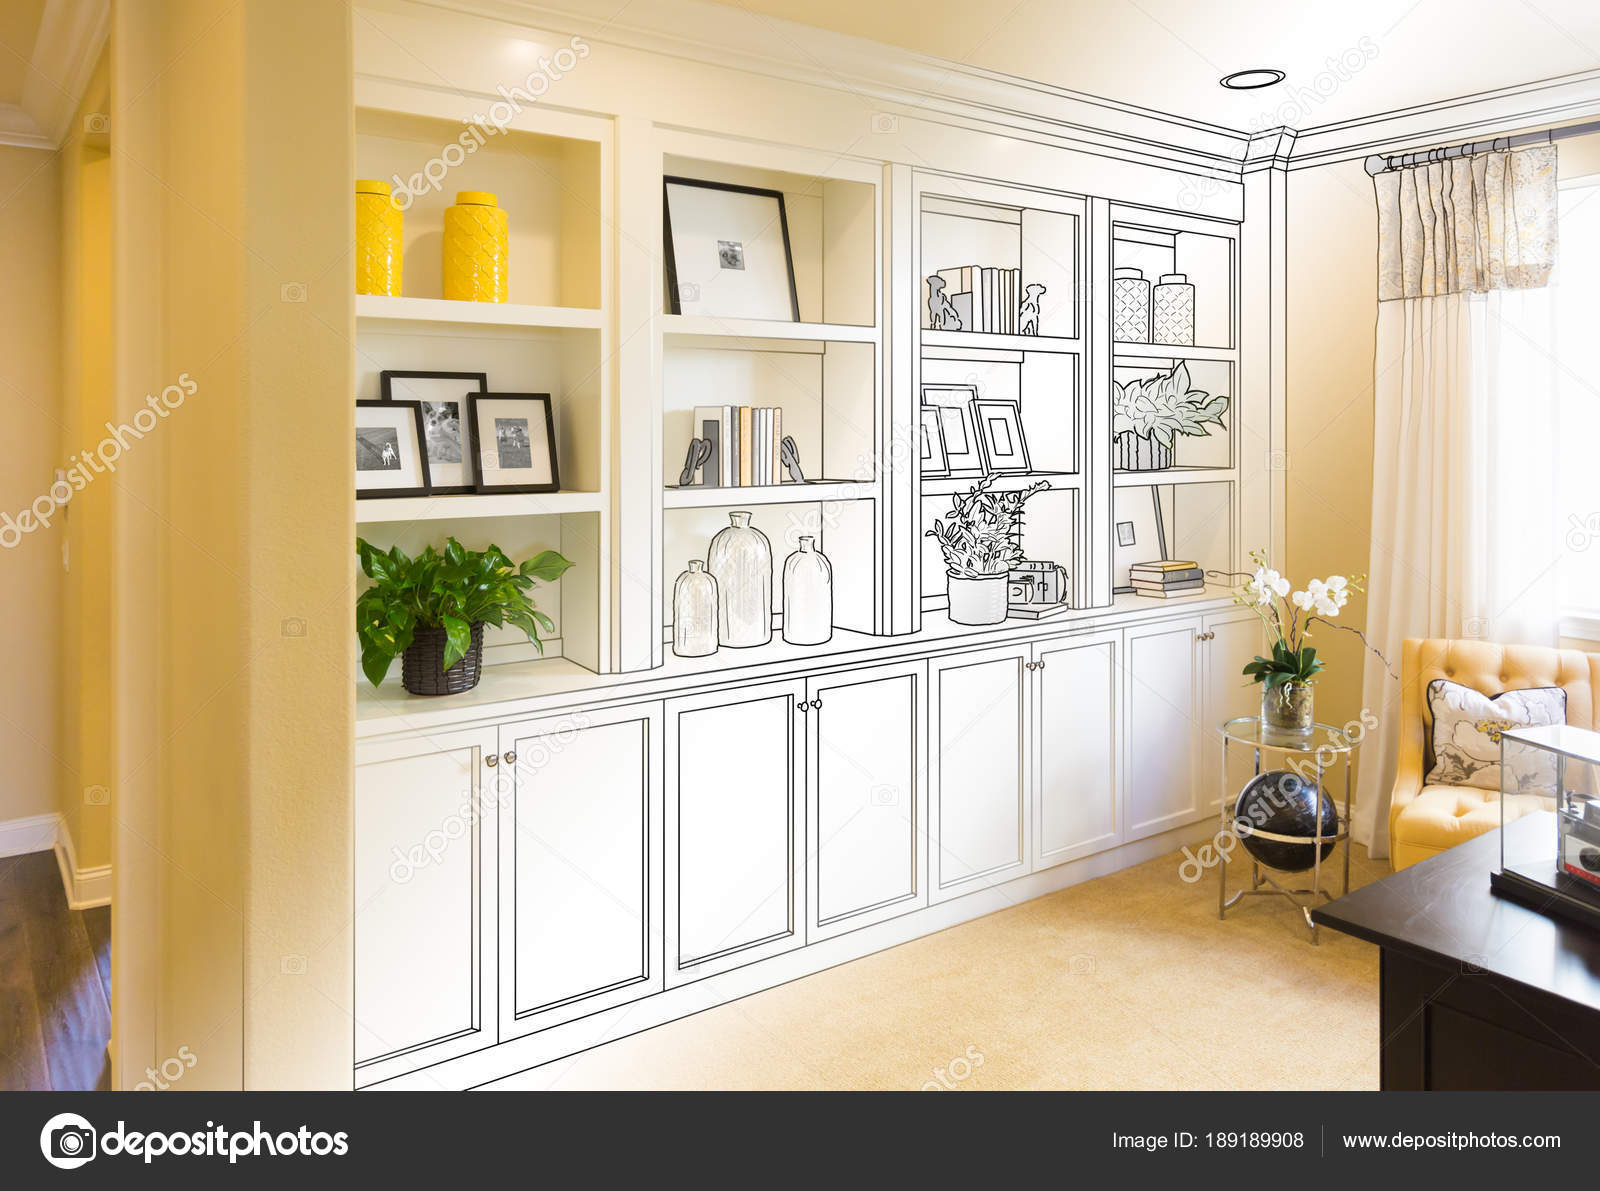 Custom Built-in Shelves and Cabinets Design Drawing Gradating to ...